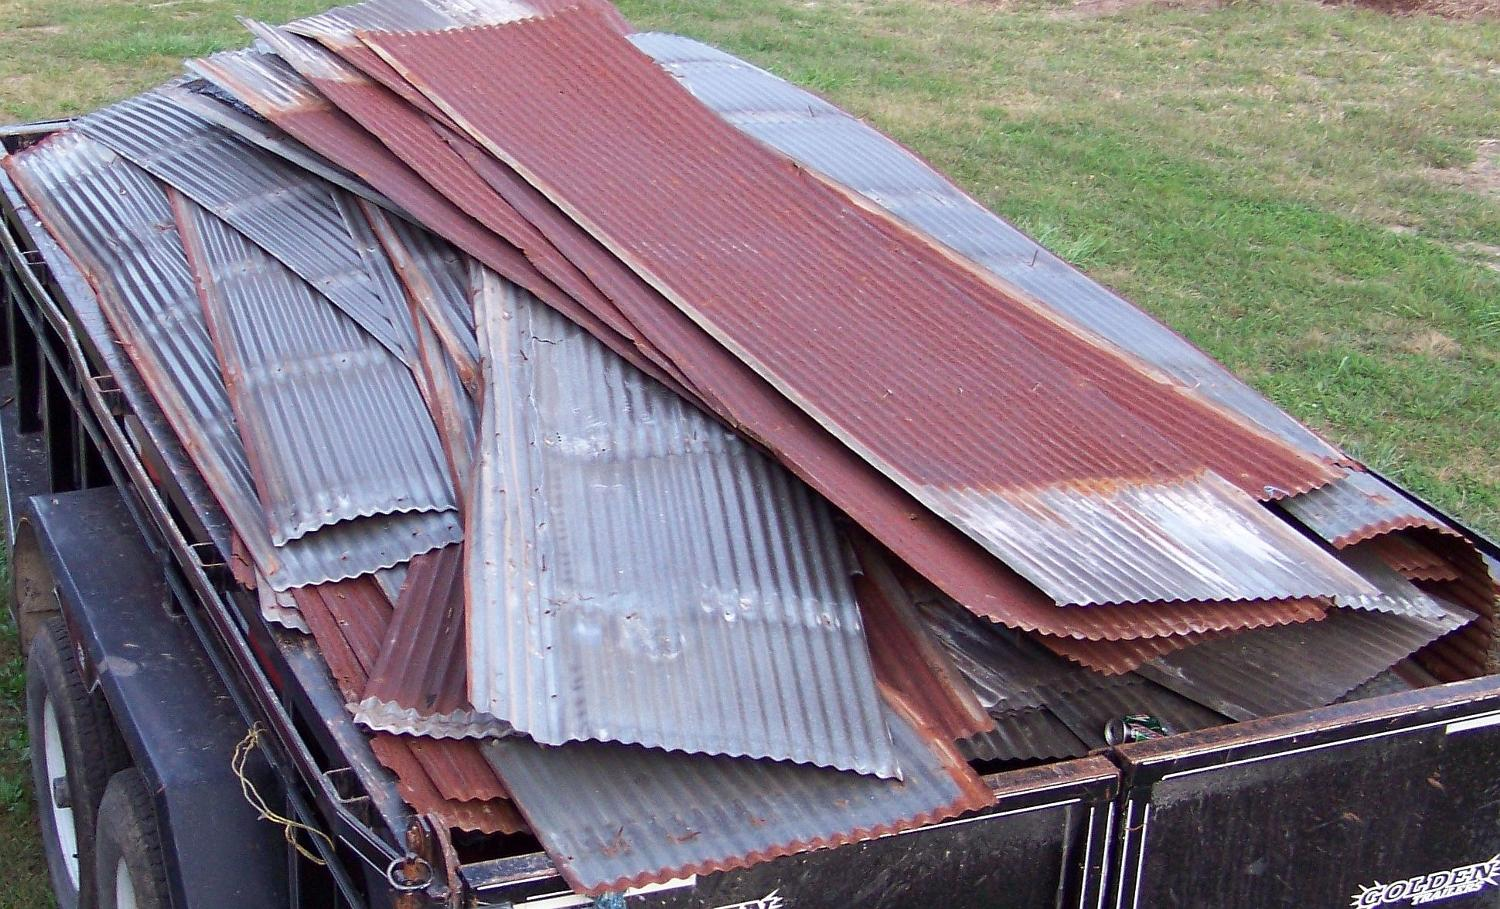 Best Old Corrugated Rusty Tin Barn Roof Panels For Sale In